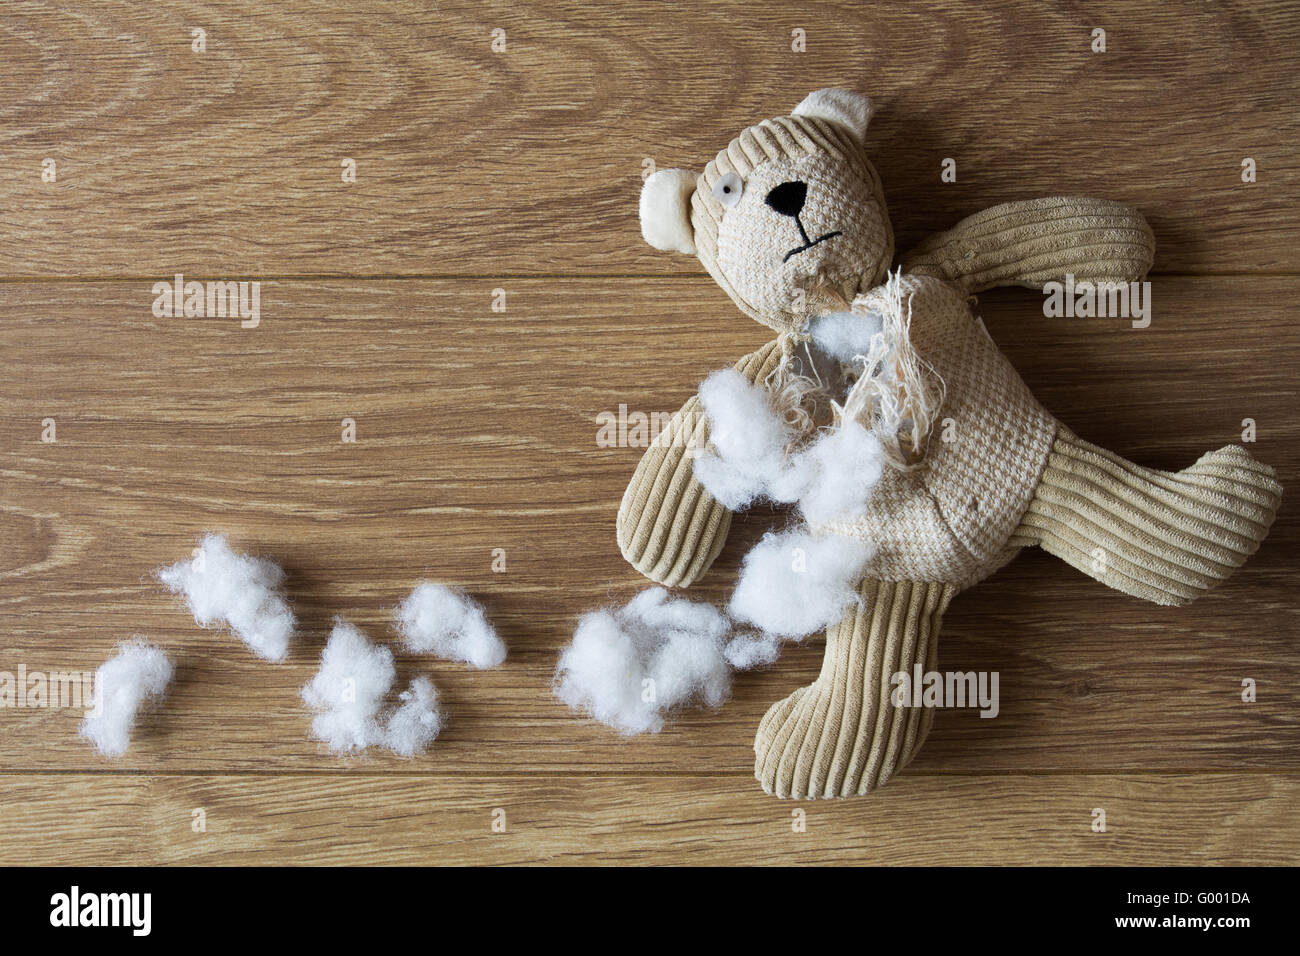 A Sad Abandoned Teddy Bear With His Stuffing Pulled Out